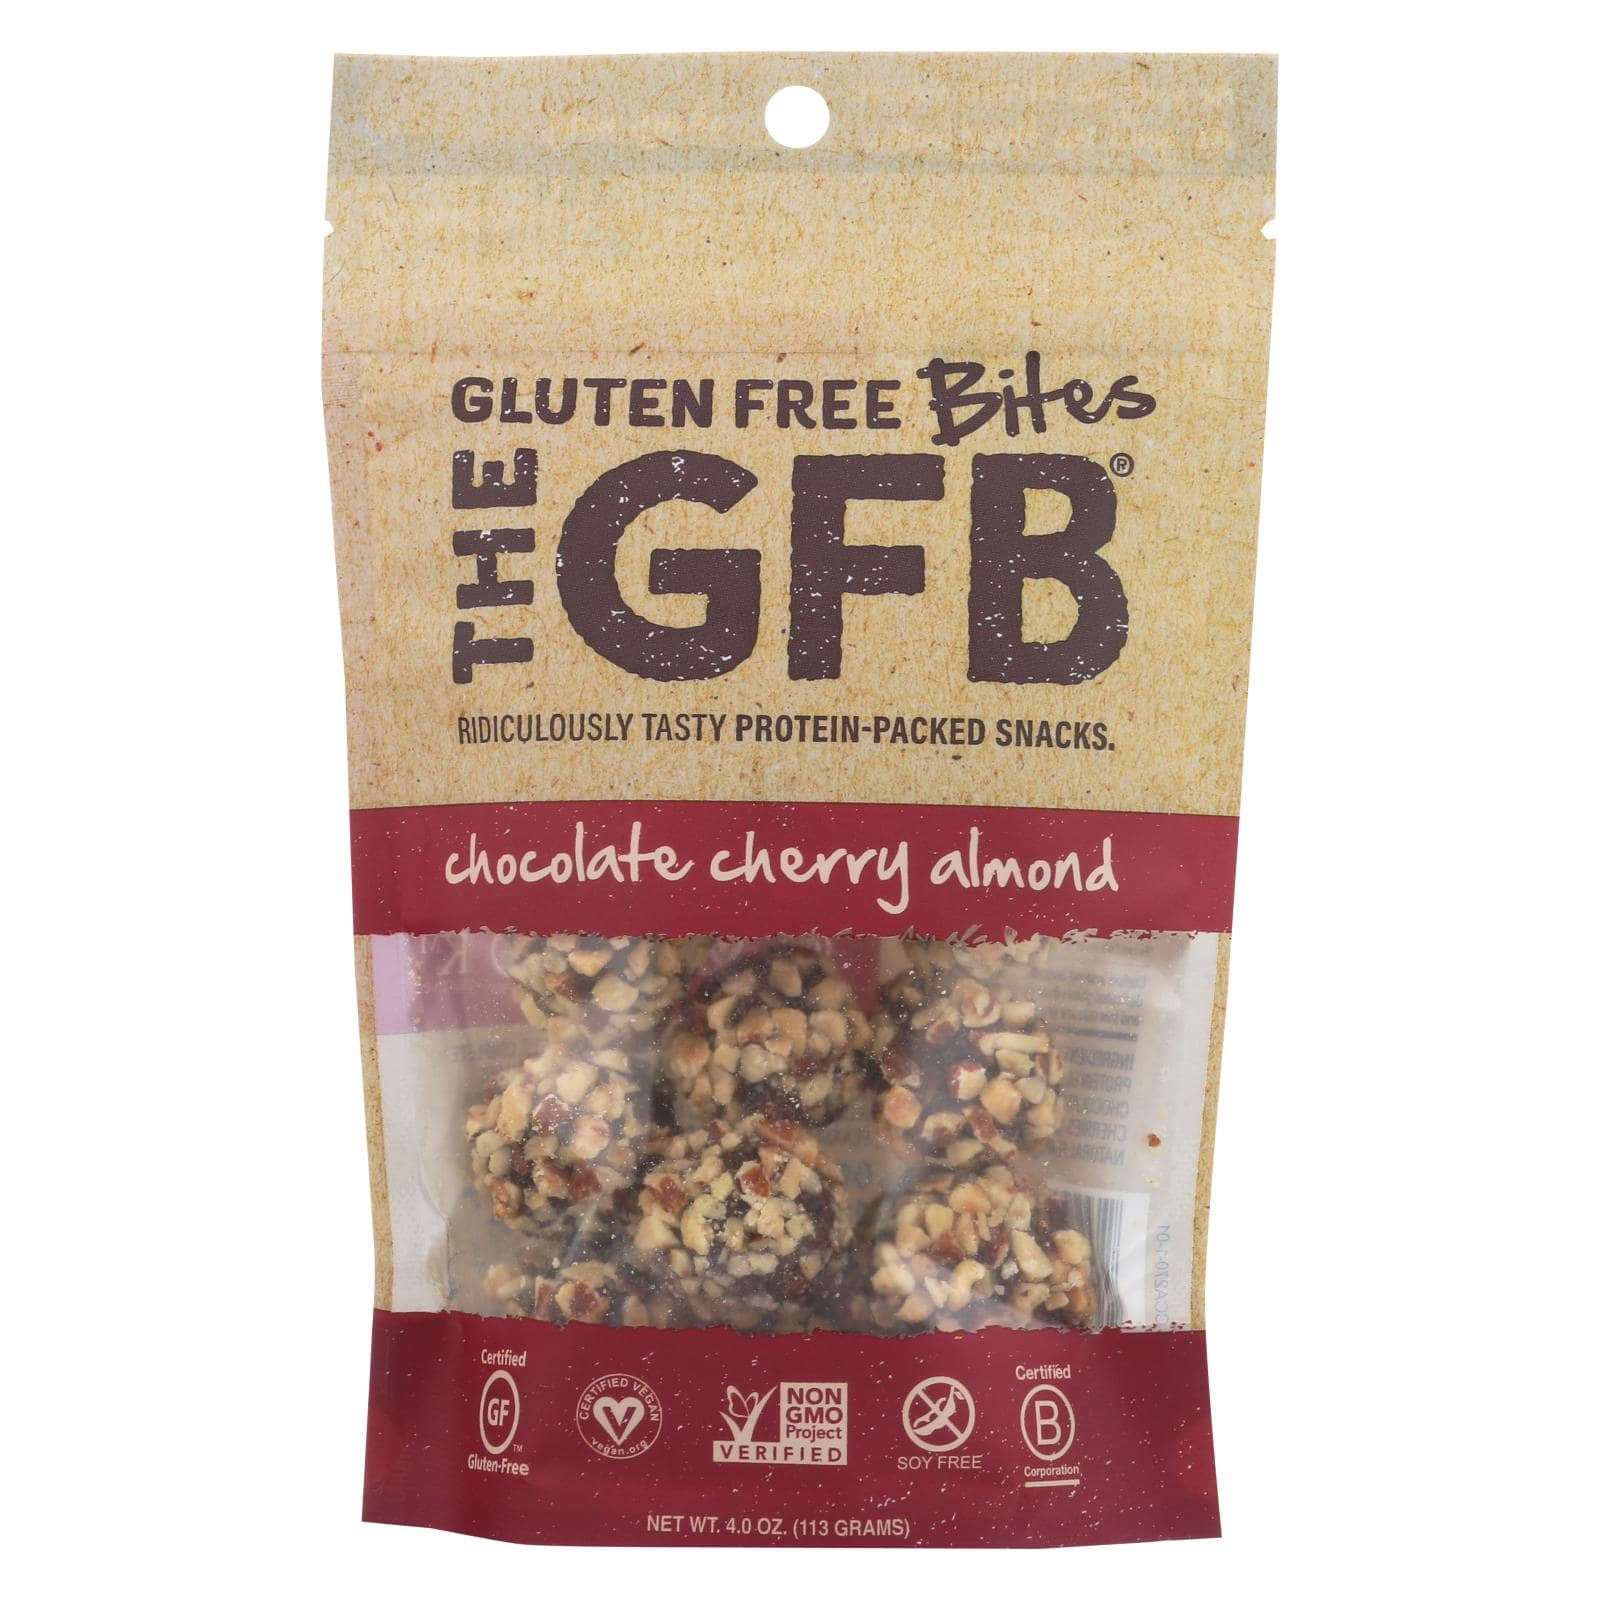 The GFB Gluten Free Bites - Chocolate Cherry Almond